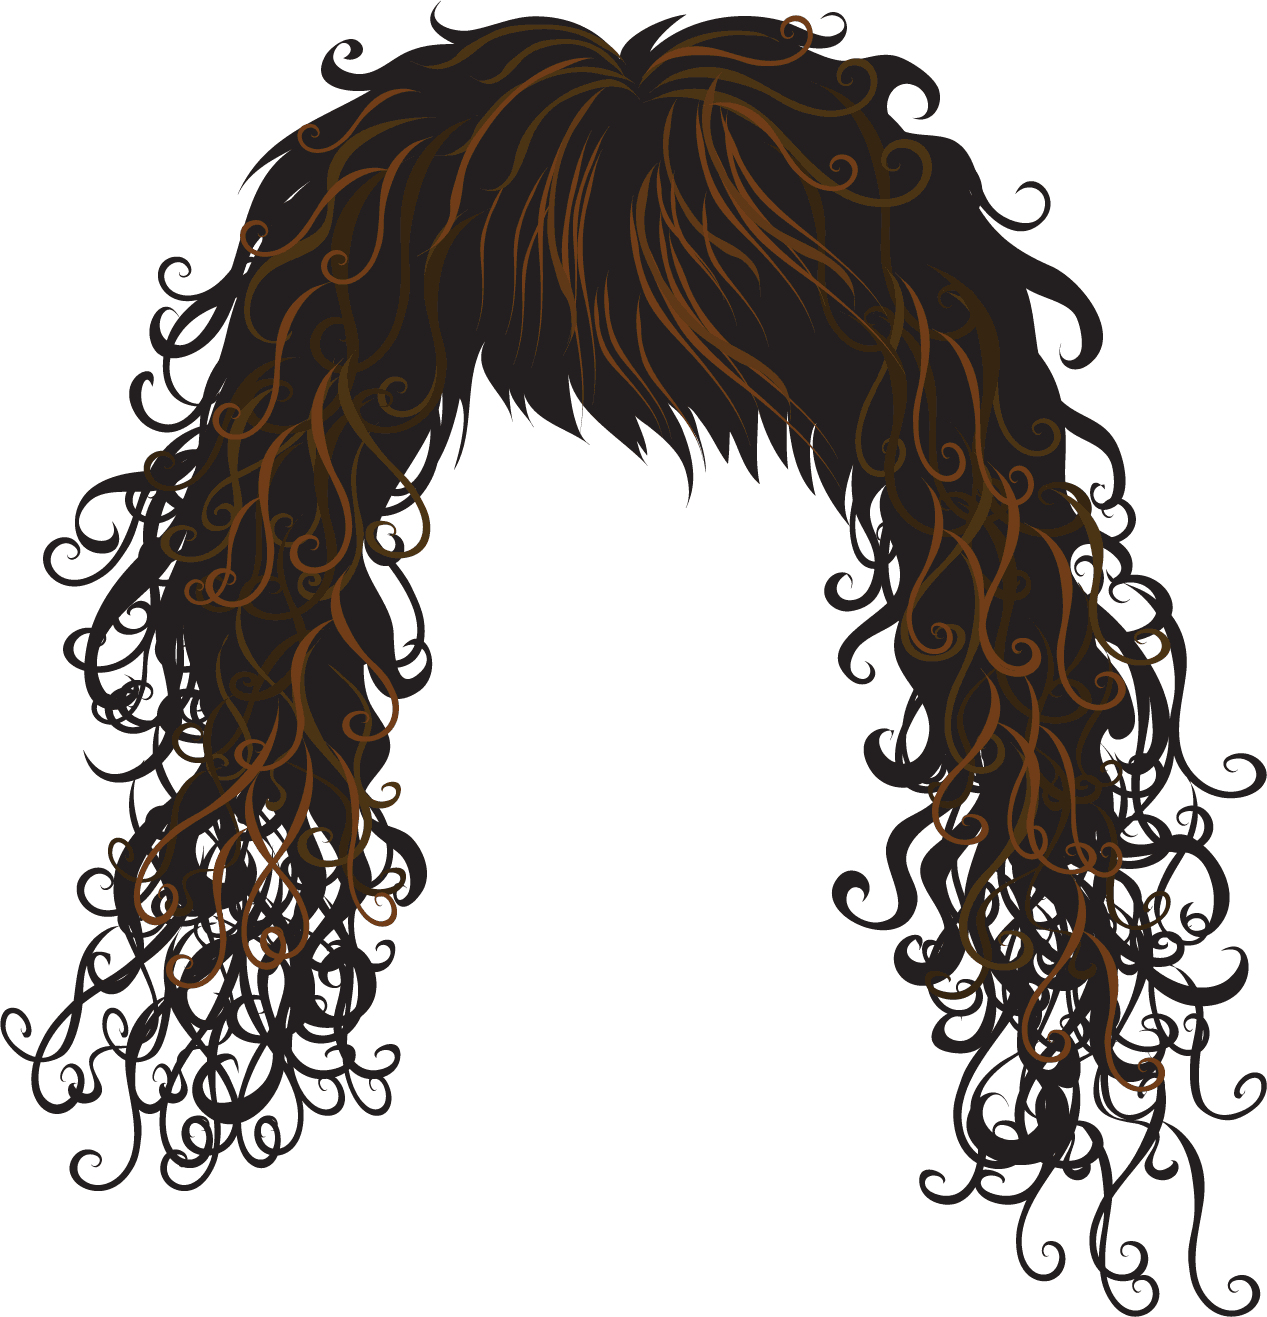 Haircut clip royalty free. Crazy clipart crazy wig graphic black and white library